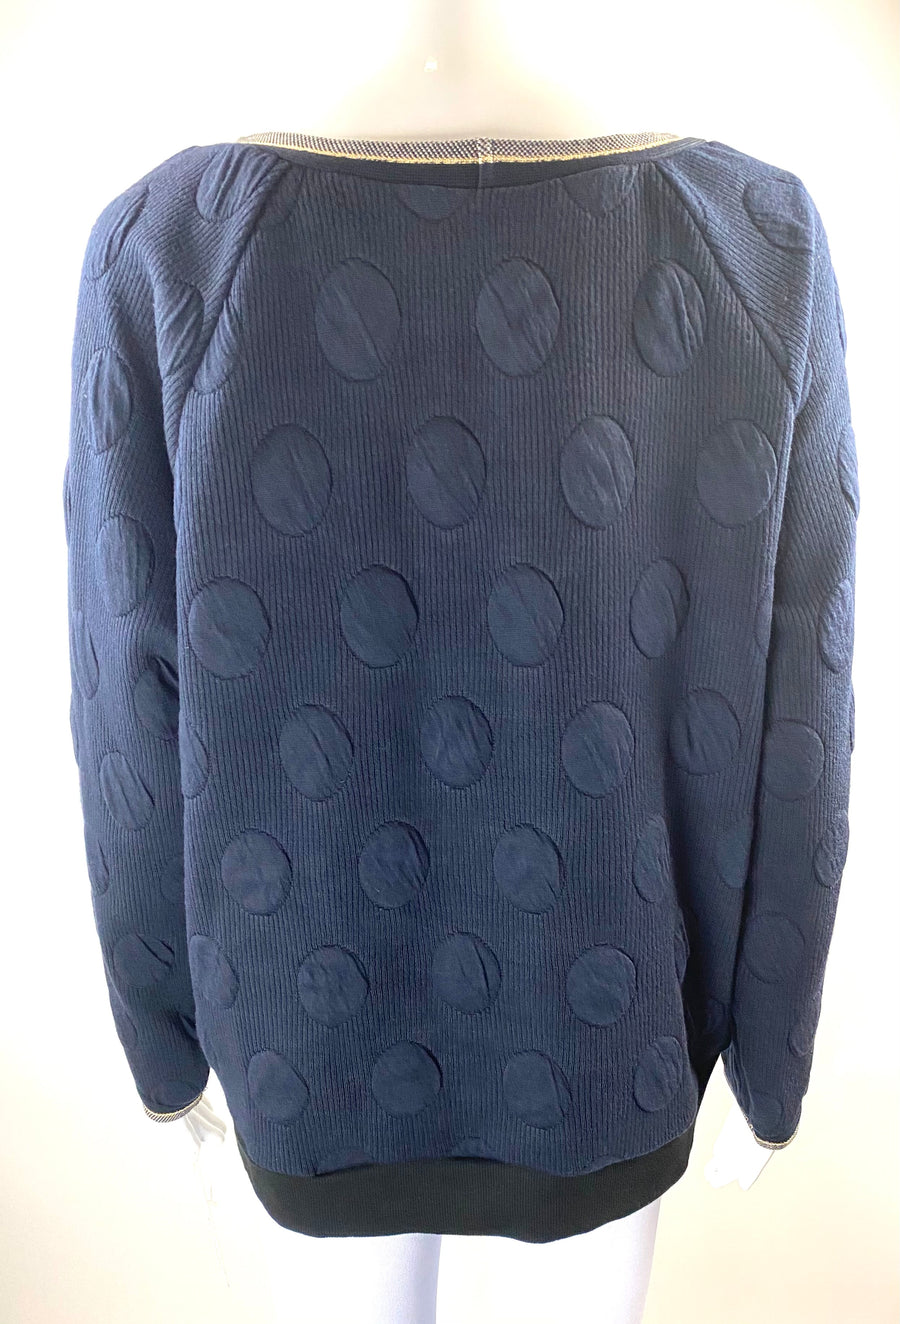 Weston Navy Textured Crewneck Sweatshirt with Metallic Accents | XL | NEW